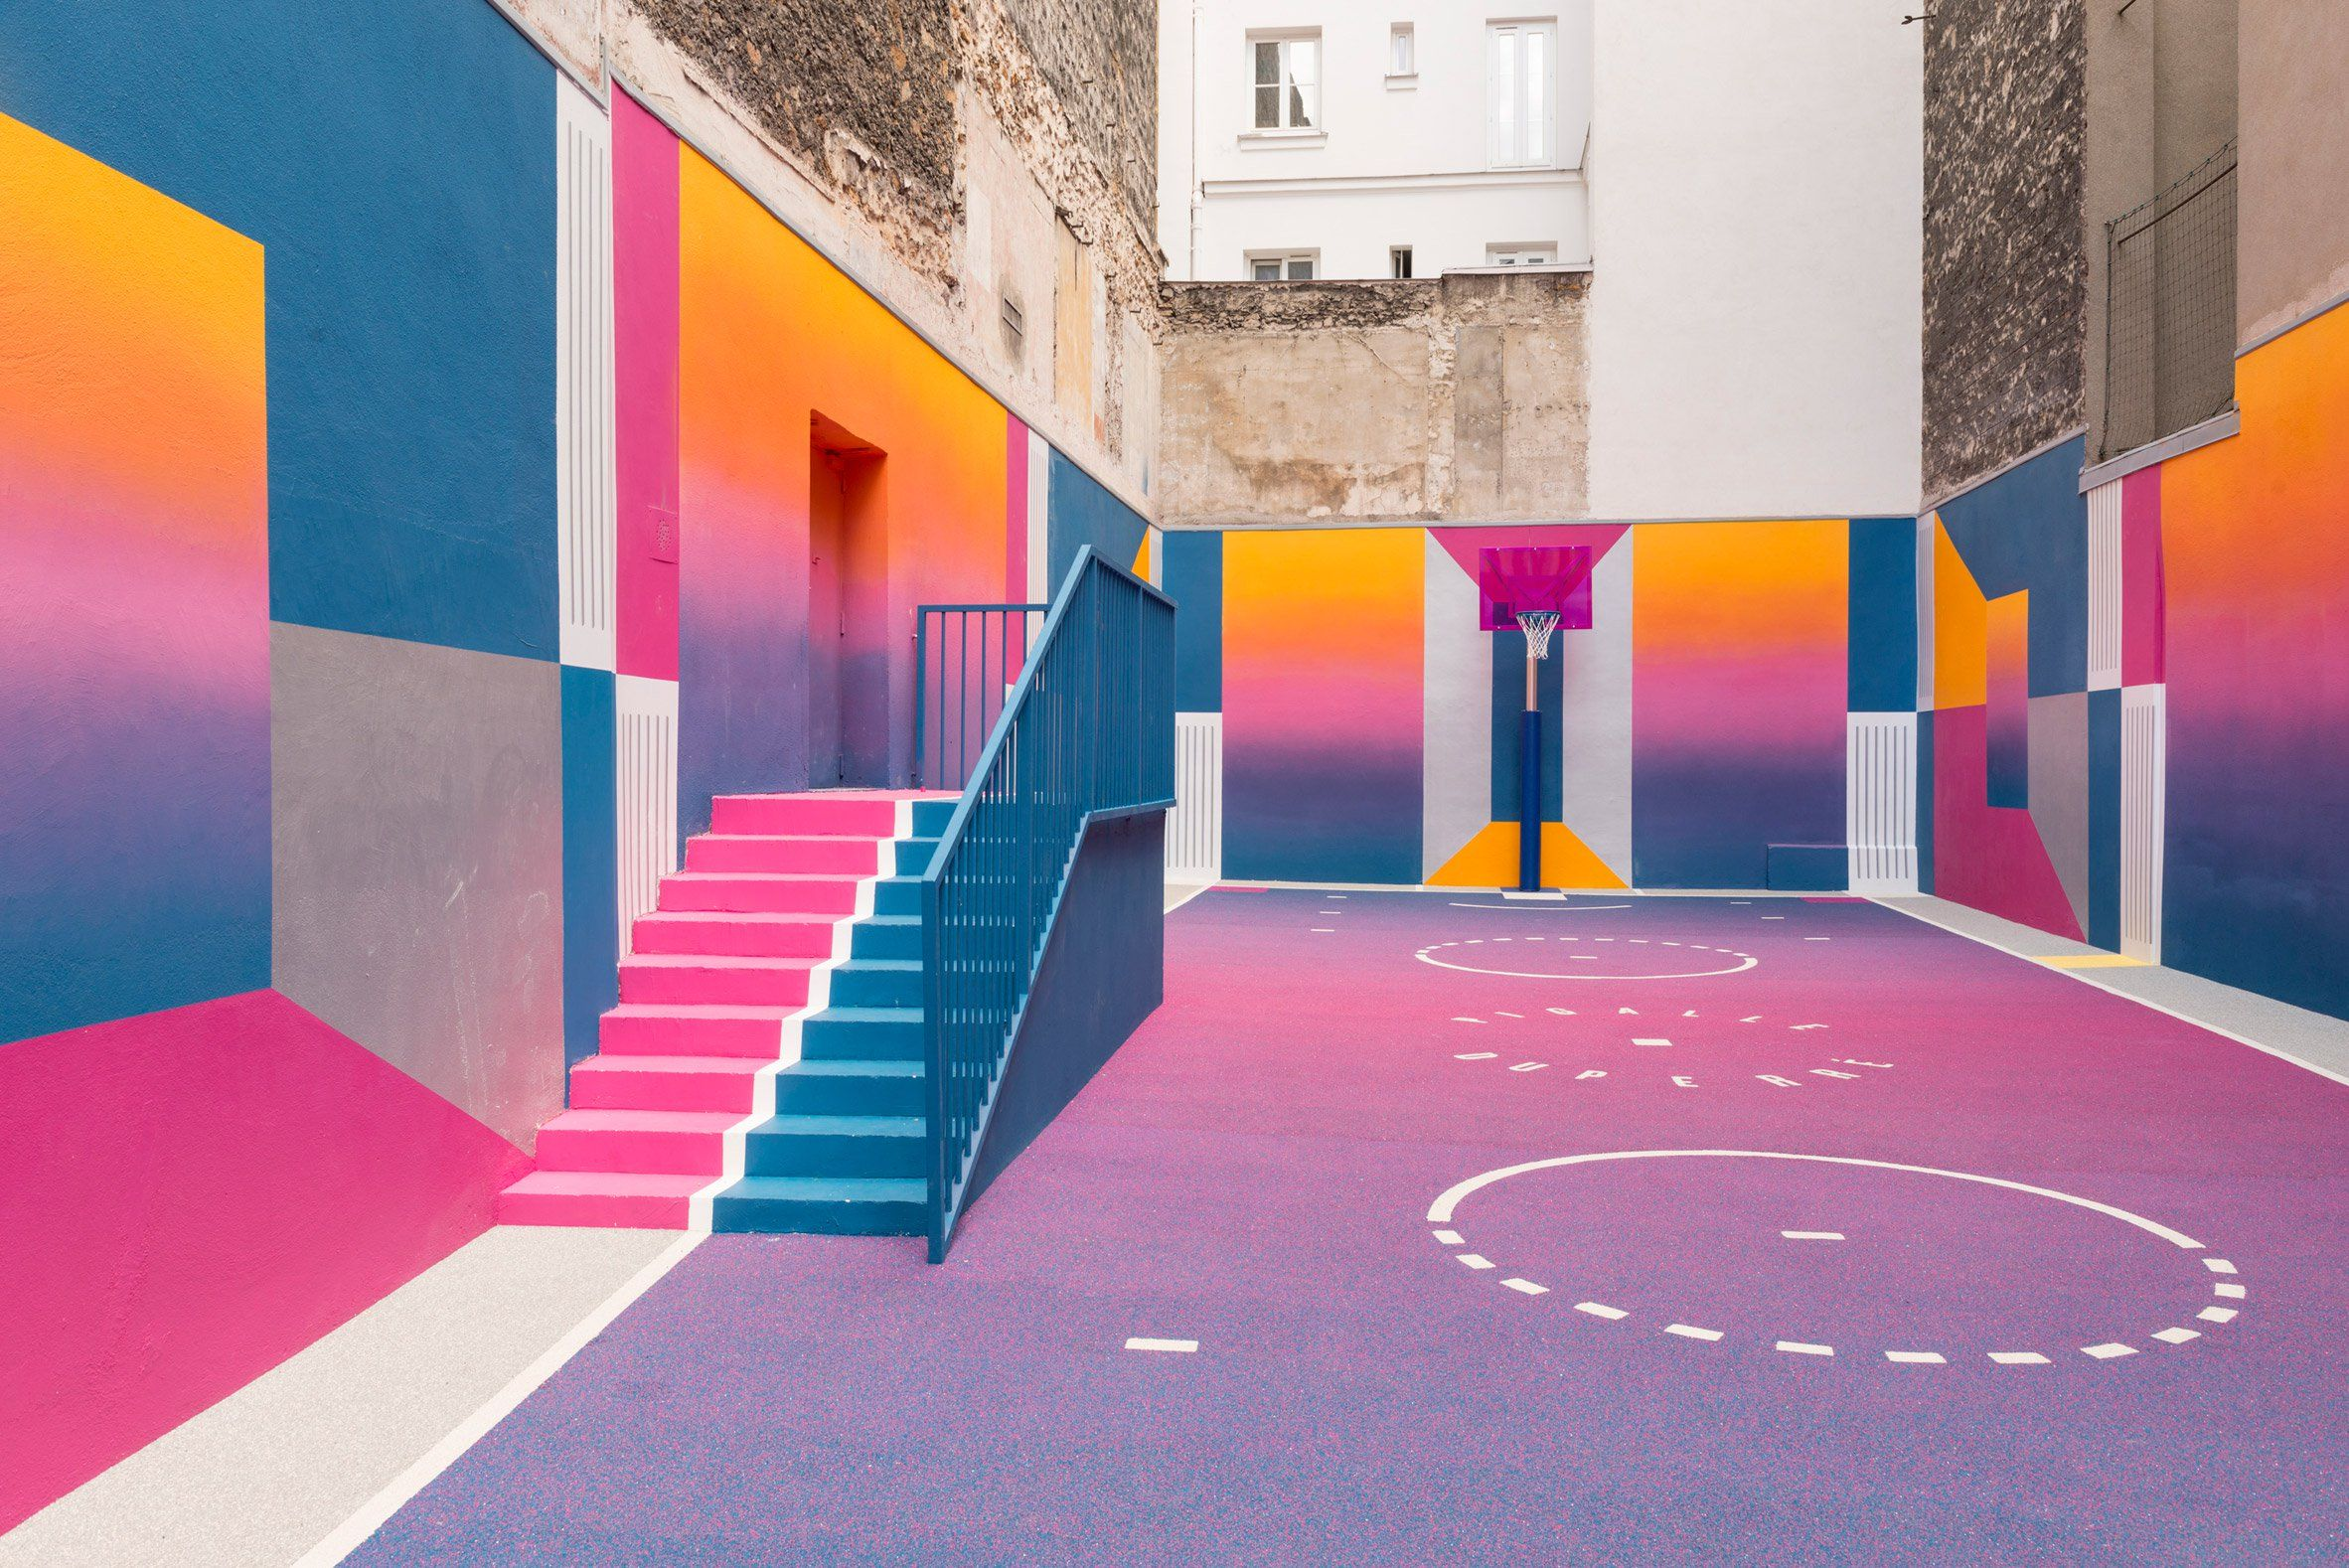 finalizando ozono Fascinante  Colourful Paris basketball court, Paris, by Pigalle Duperré | Pigalle  basketball, Floor graphics, Colour architecture